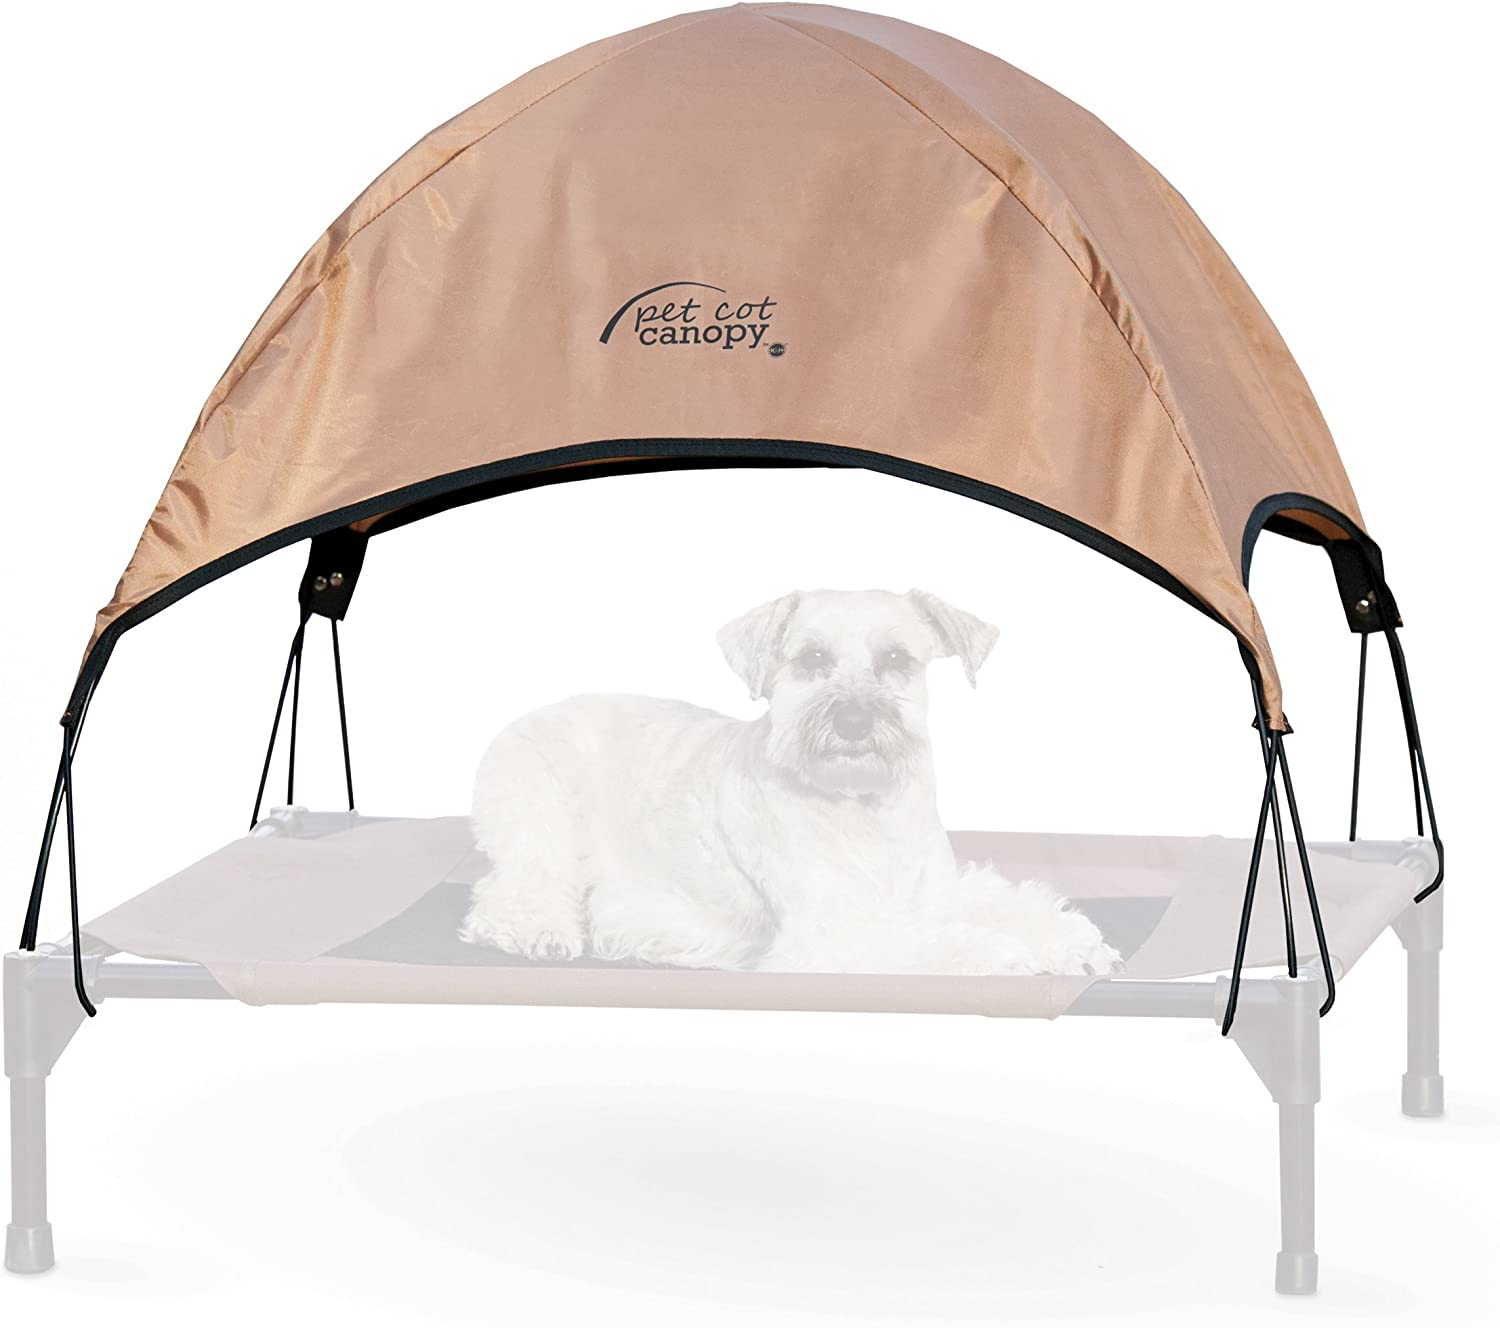 K H Pet Products Pet Cot Canopy Cot sold separately